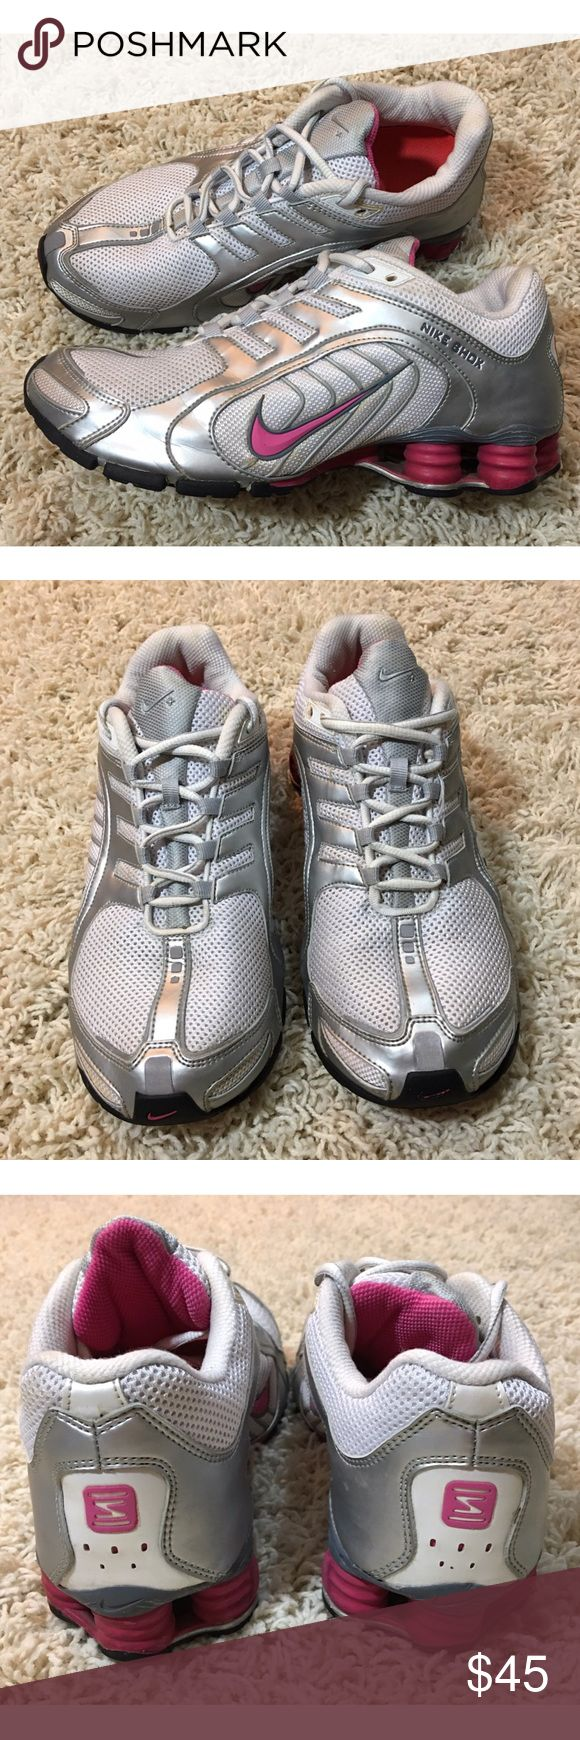 844cf9129b1 ... coupon code for grey customized with swarovski nike shox current pink  gold nike shox sneakers 5c2d6